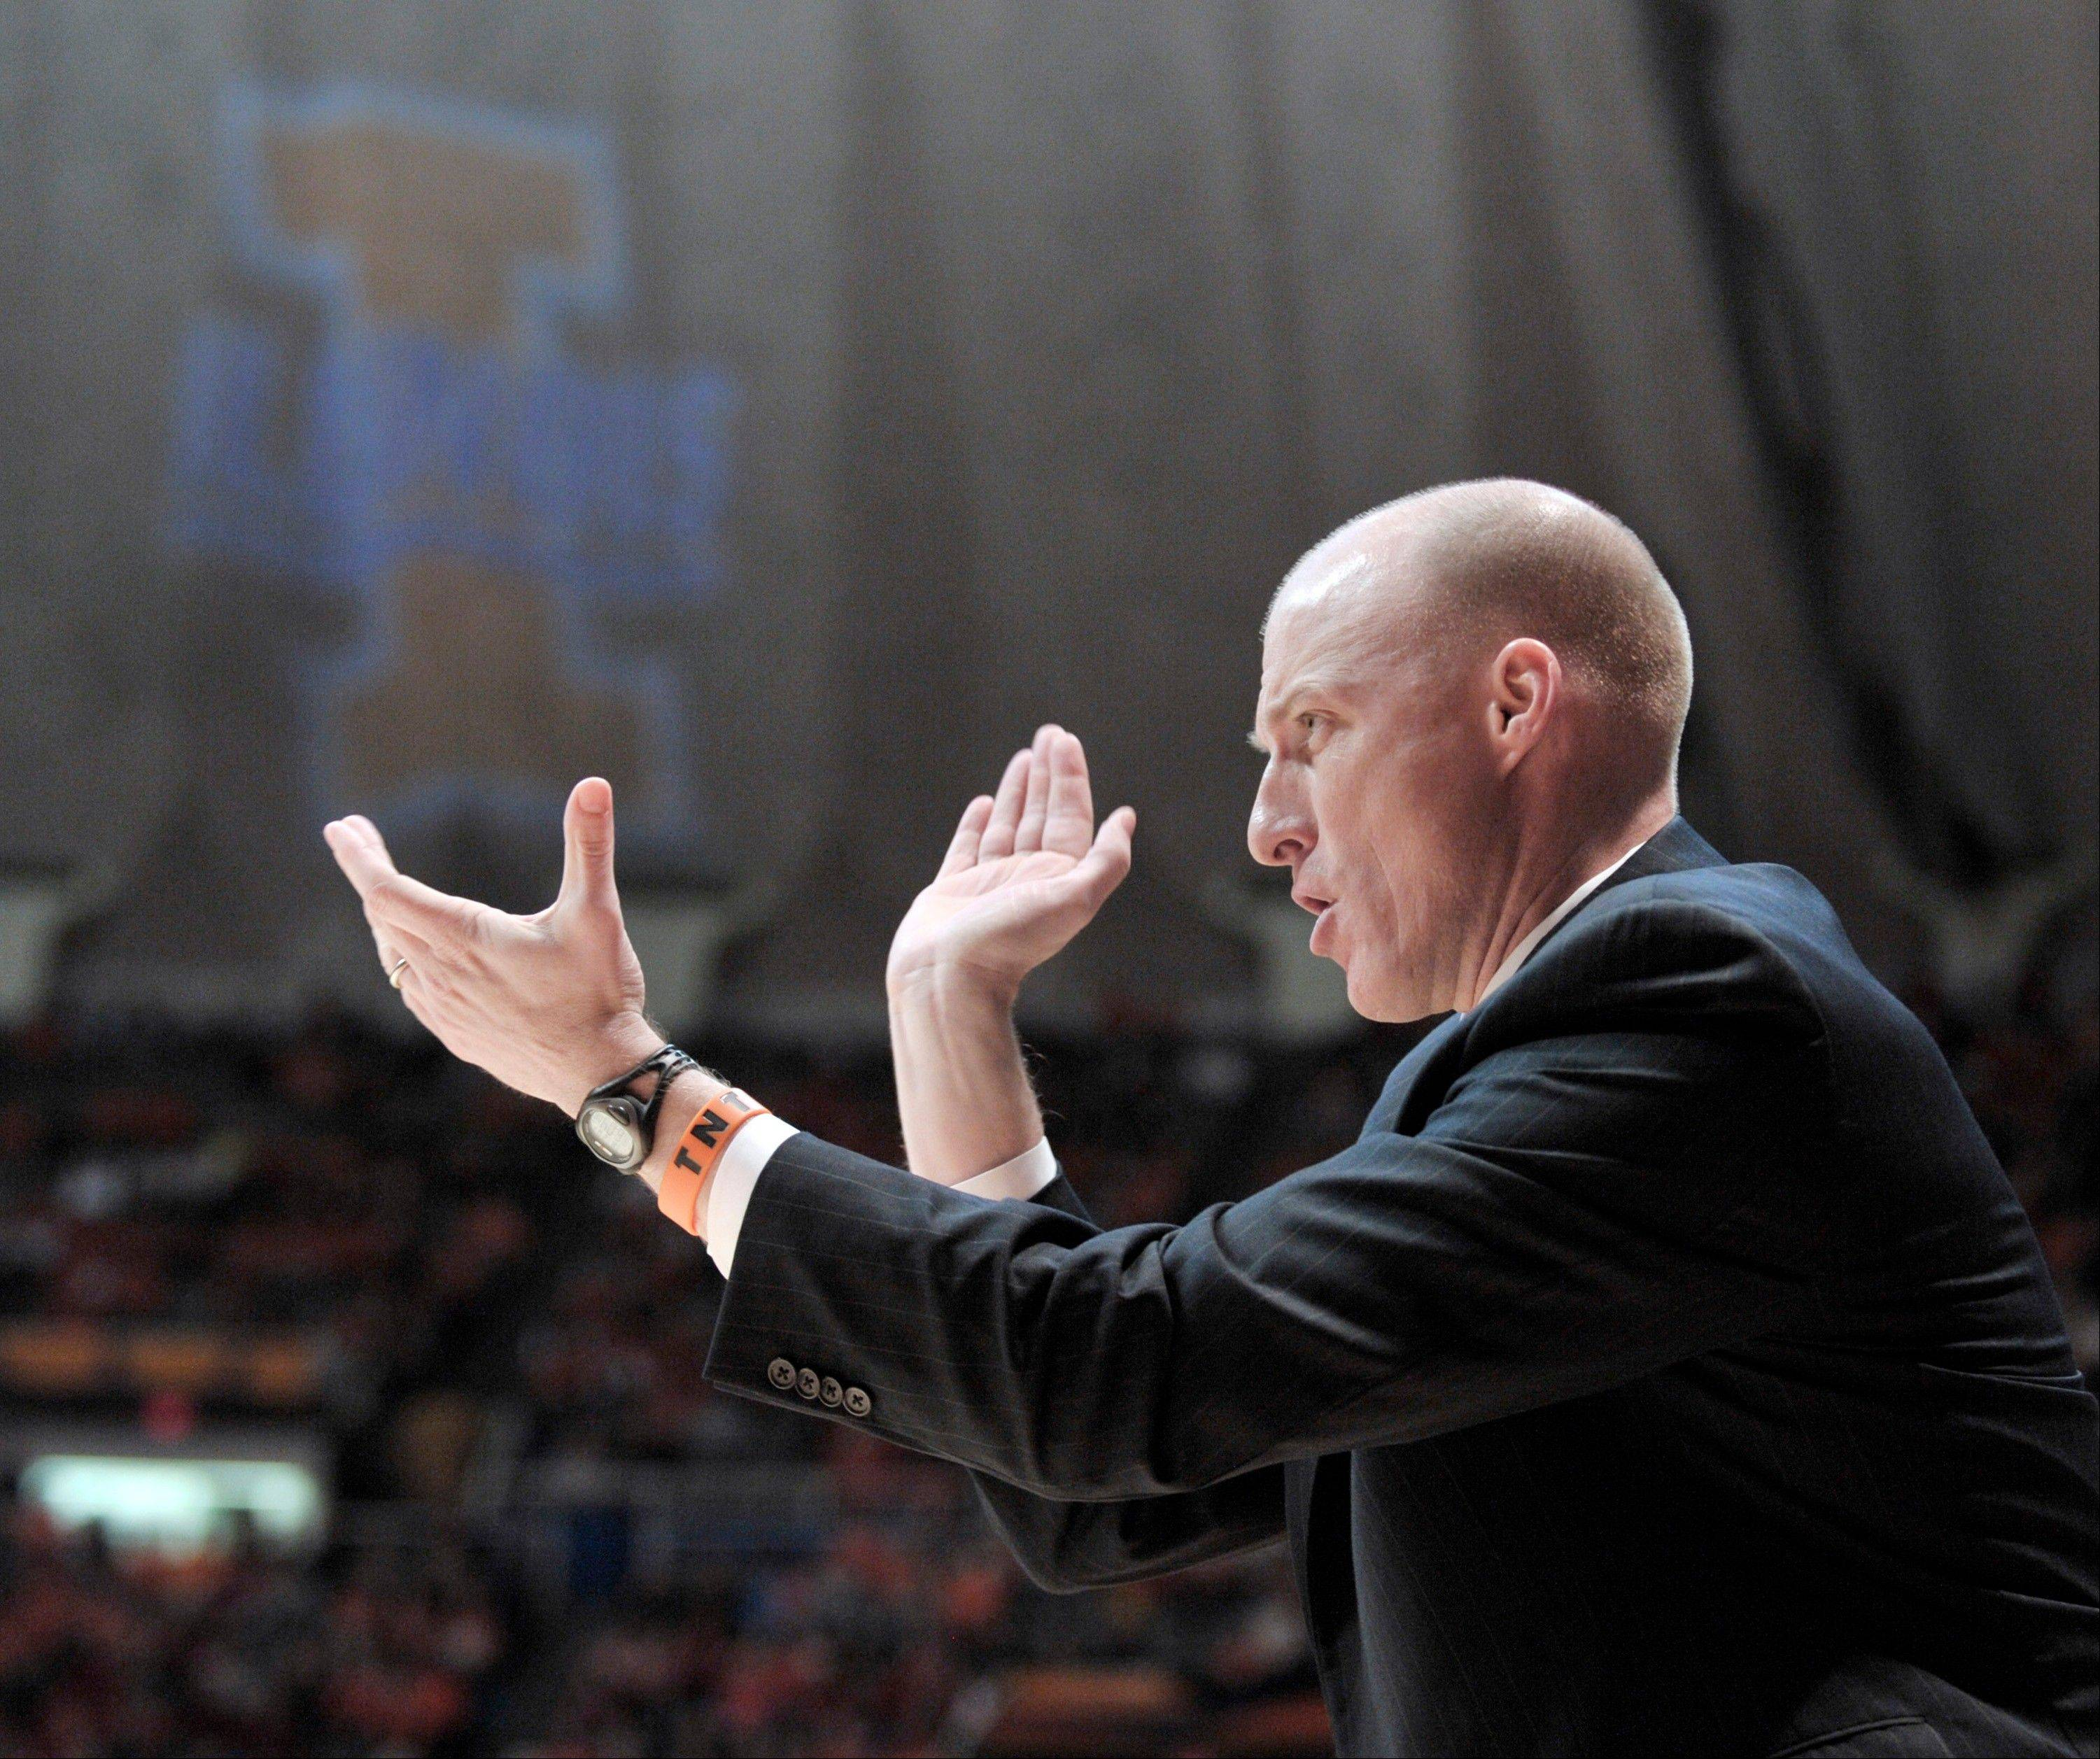 Illinois coach John Groce liked what he saw Thursday from his basketball team at Assembly Hall. Illinois beat No. 1 Indiana 74-72.